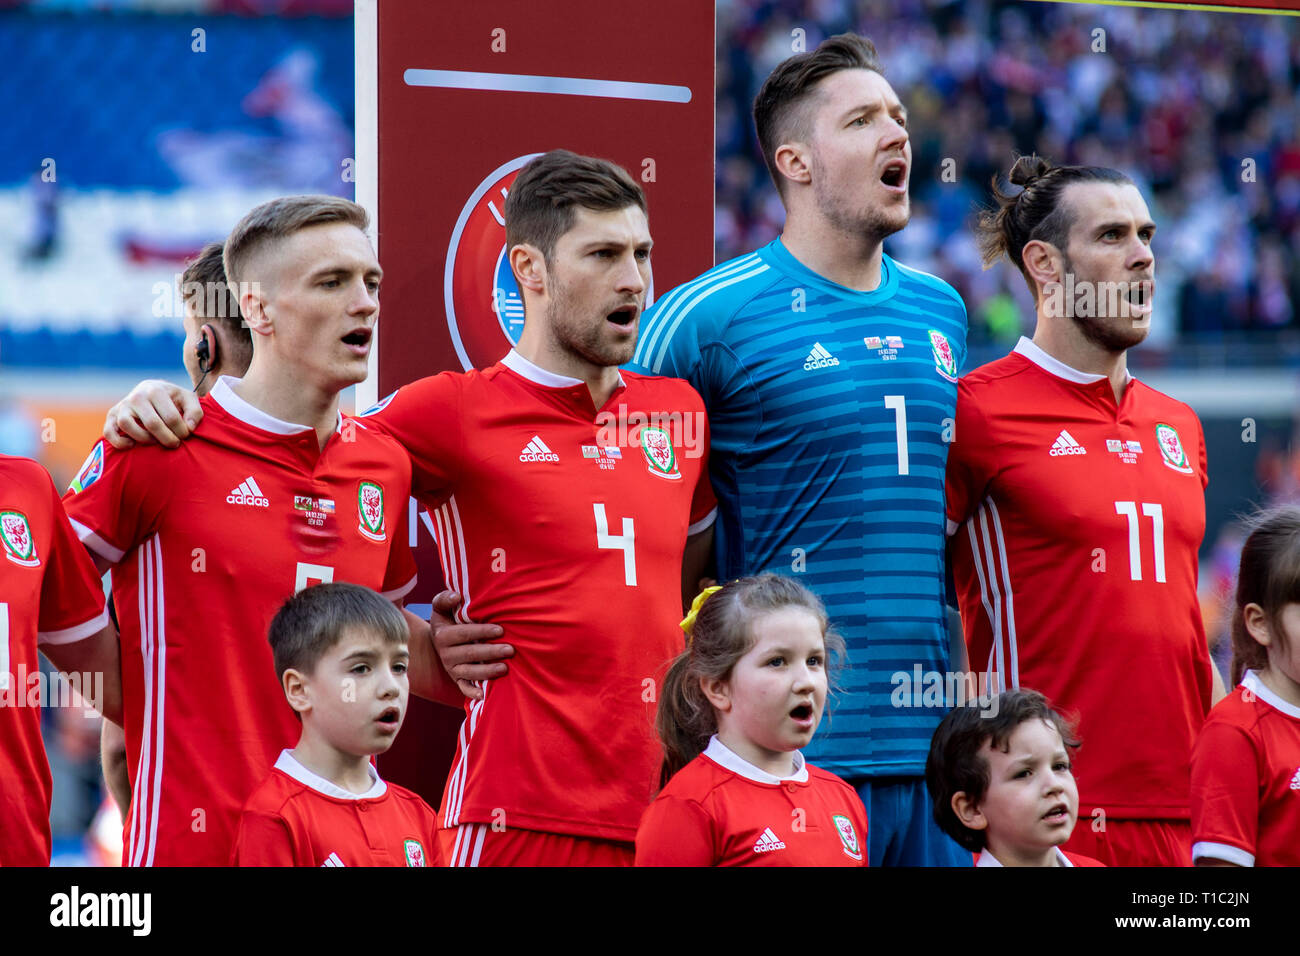 Matt Smith, Ben Davies, Wayne Hennessey & Gareth Bale of Wales  lineup for the national anthem. Wales v Slovakia UEFA Euro 2020 Qualifier in Cardiff. - Stock Image